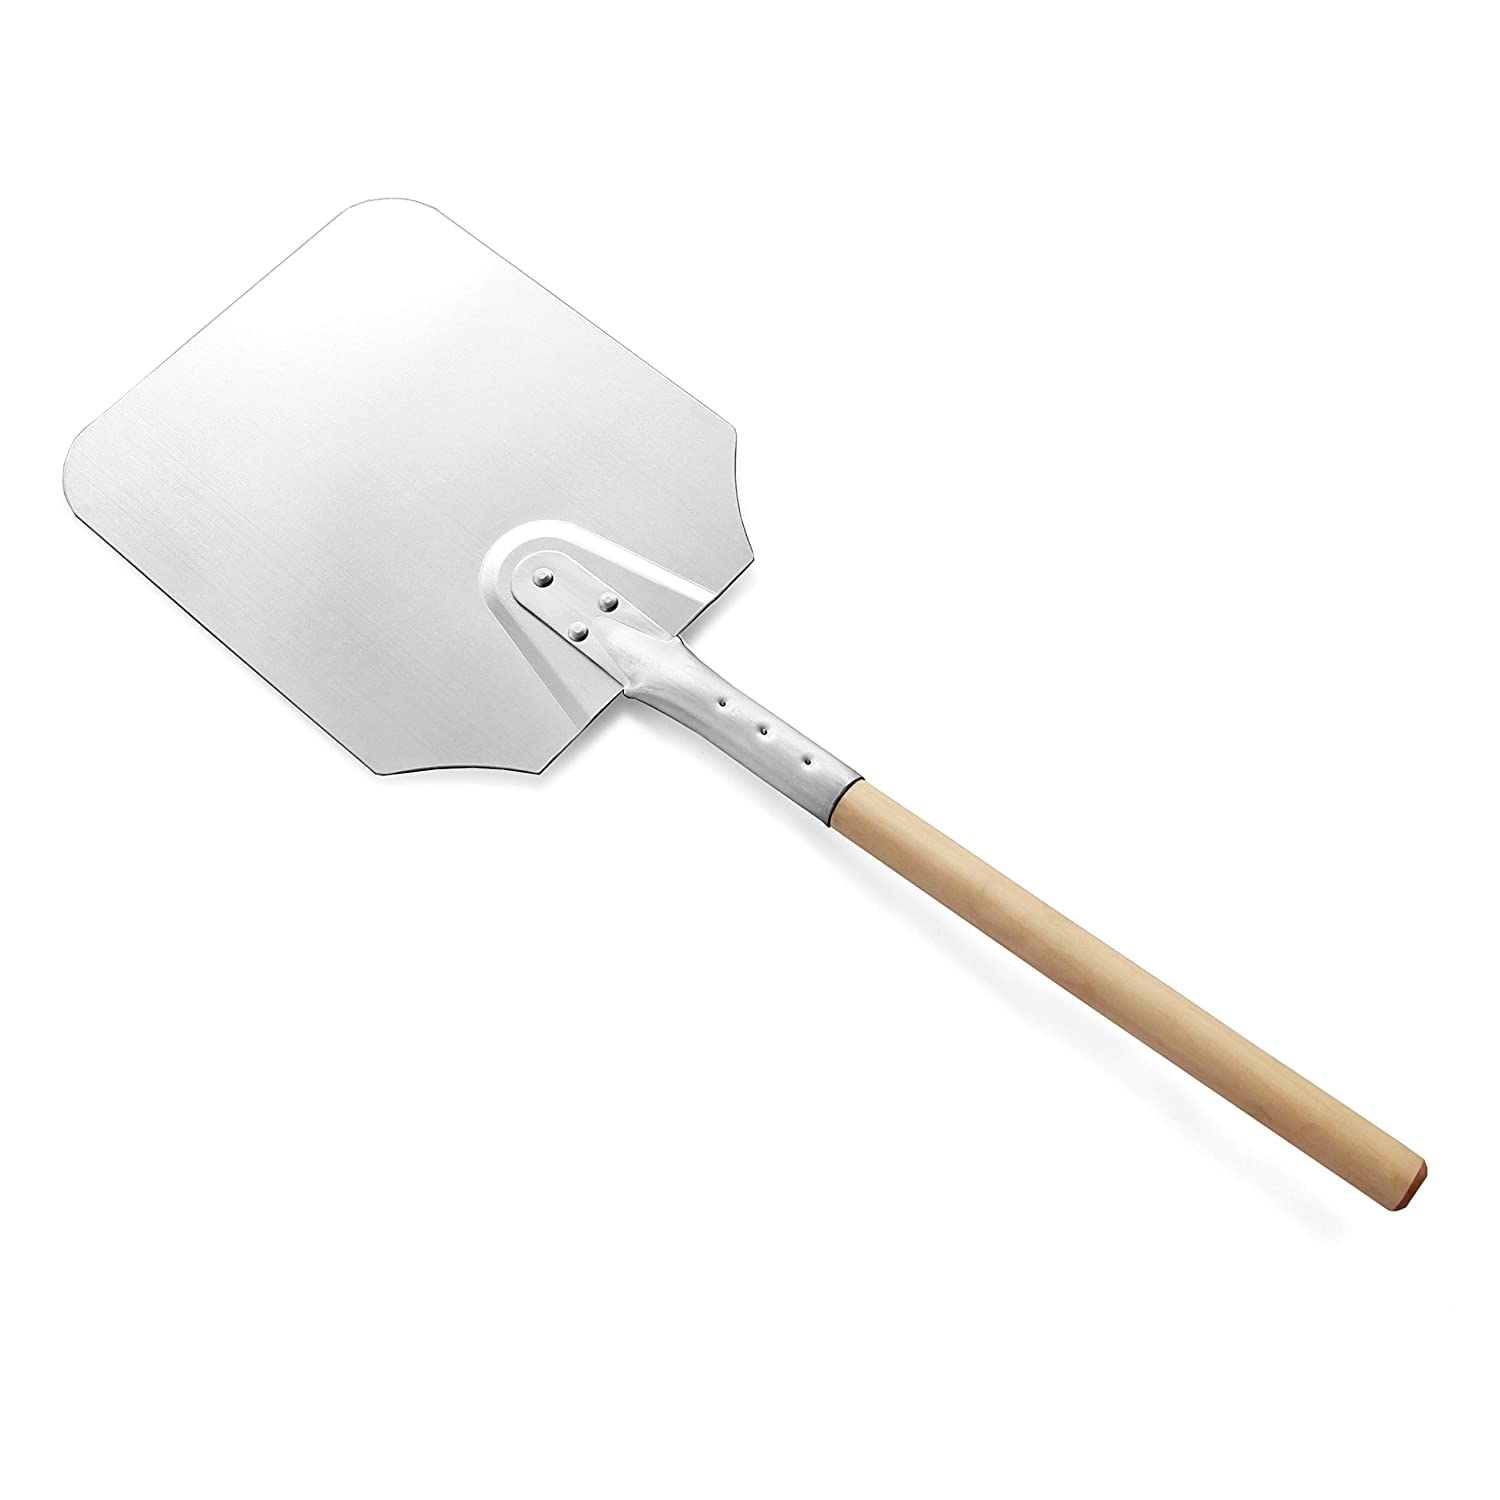 New Star Foodservice 50219 Aluminum Pizza Peel, Wooden Handle, 9 x 11 inch Blade, 26 inch overall